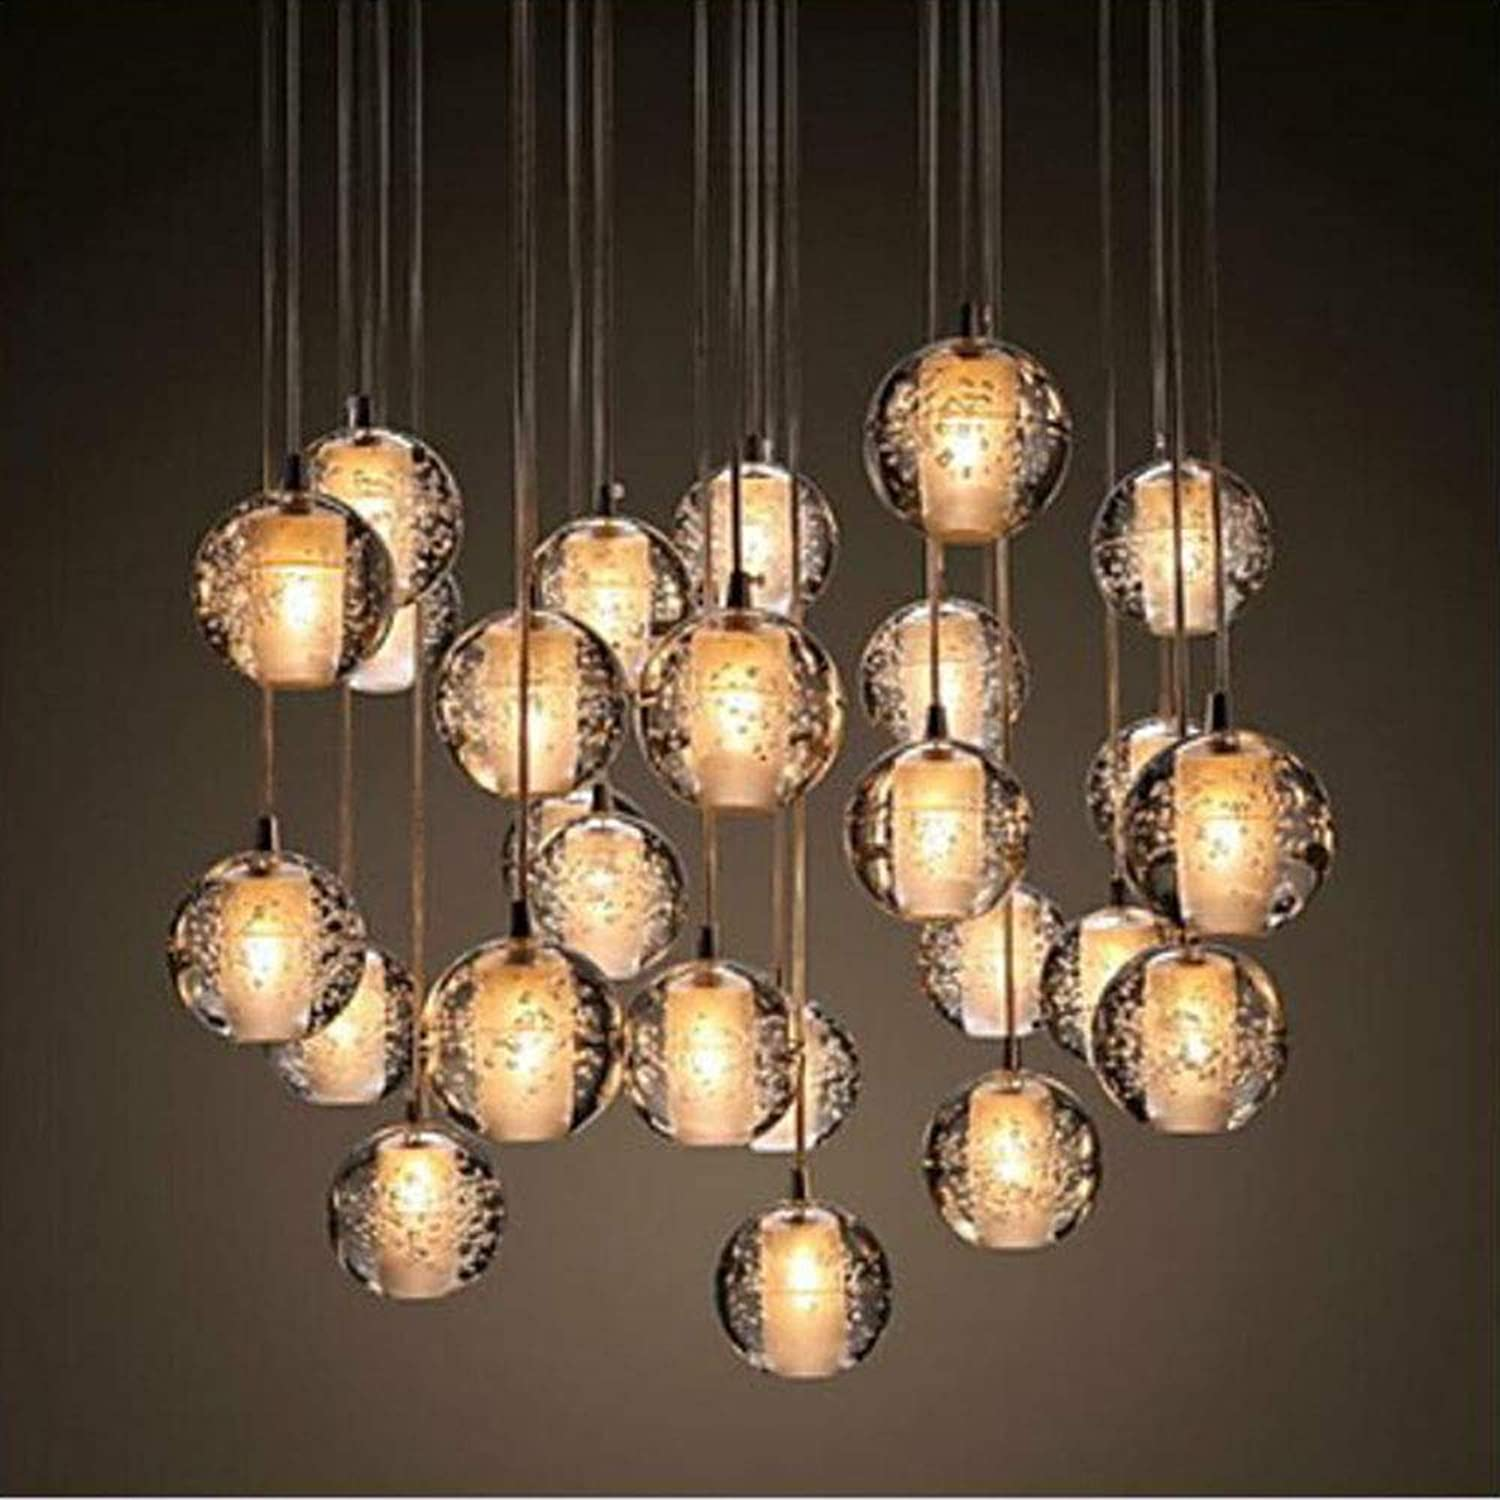 MICHEN Cluster Pendant Light Ambient Light - Crystal, 90-240V, Warm White, Bulb Included   G4   0-5㎡,3discsH1m